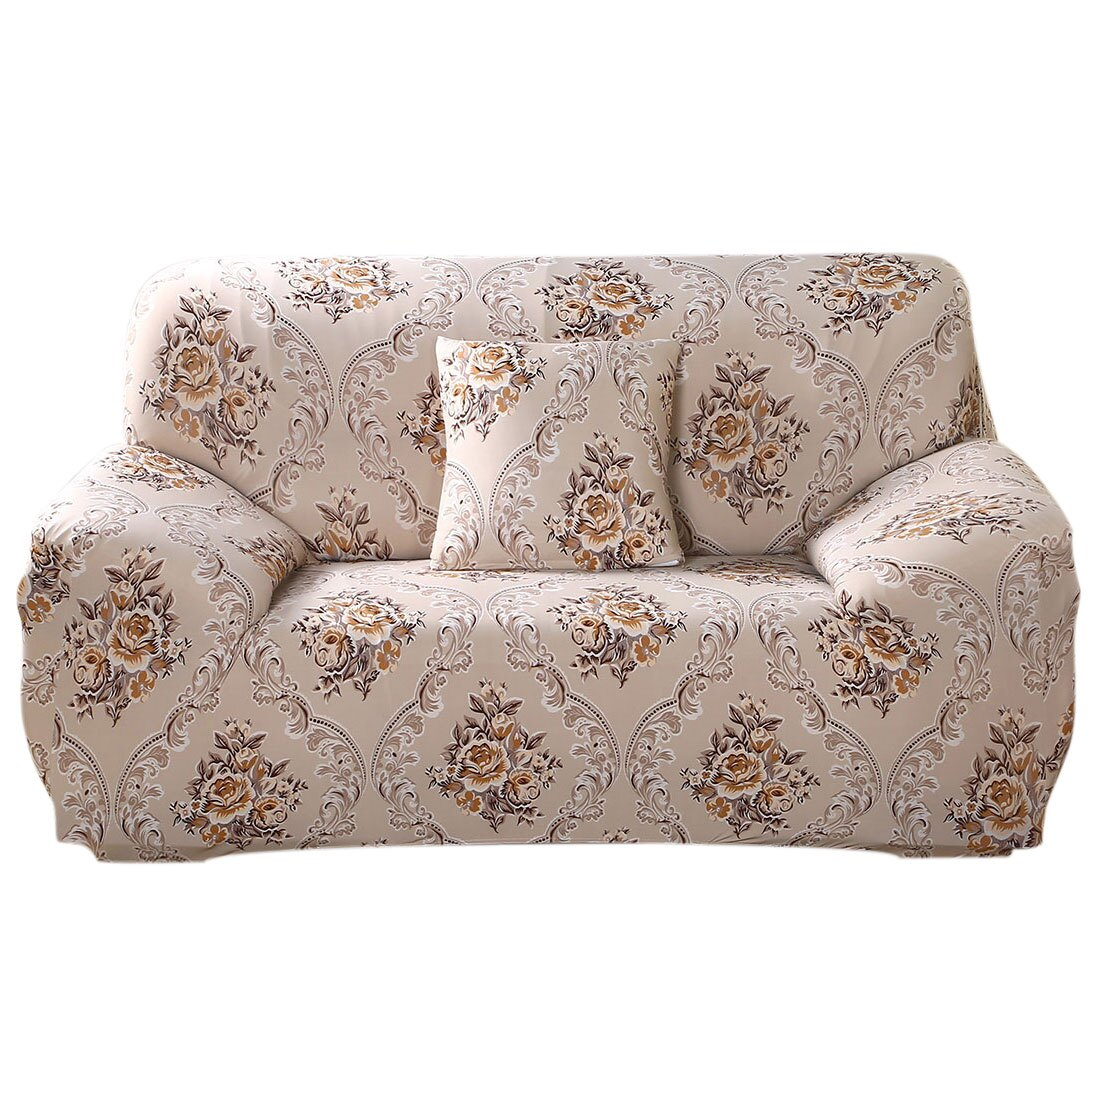 Pleasing Stretch Sofa Cover Loveseat Couch Slipcover Machine Washable Stylish Furniture Protector With One Cushion Case 3 Seater Style 4 Gmtry Best Dining Table And Chair Ideas Images Gmtryco